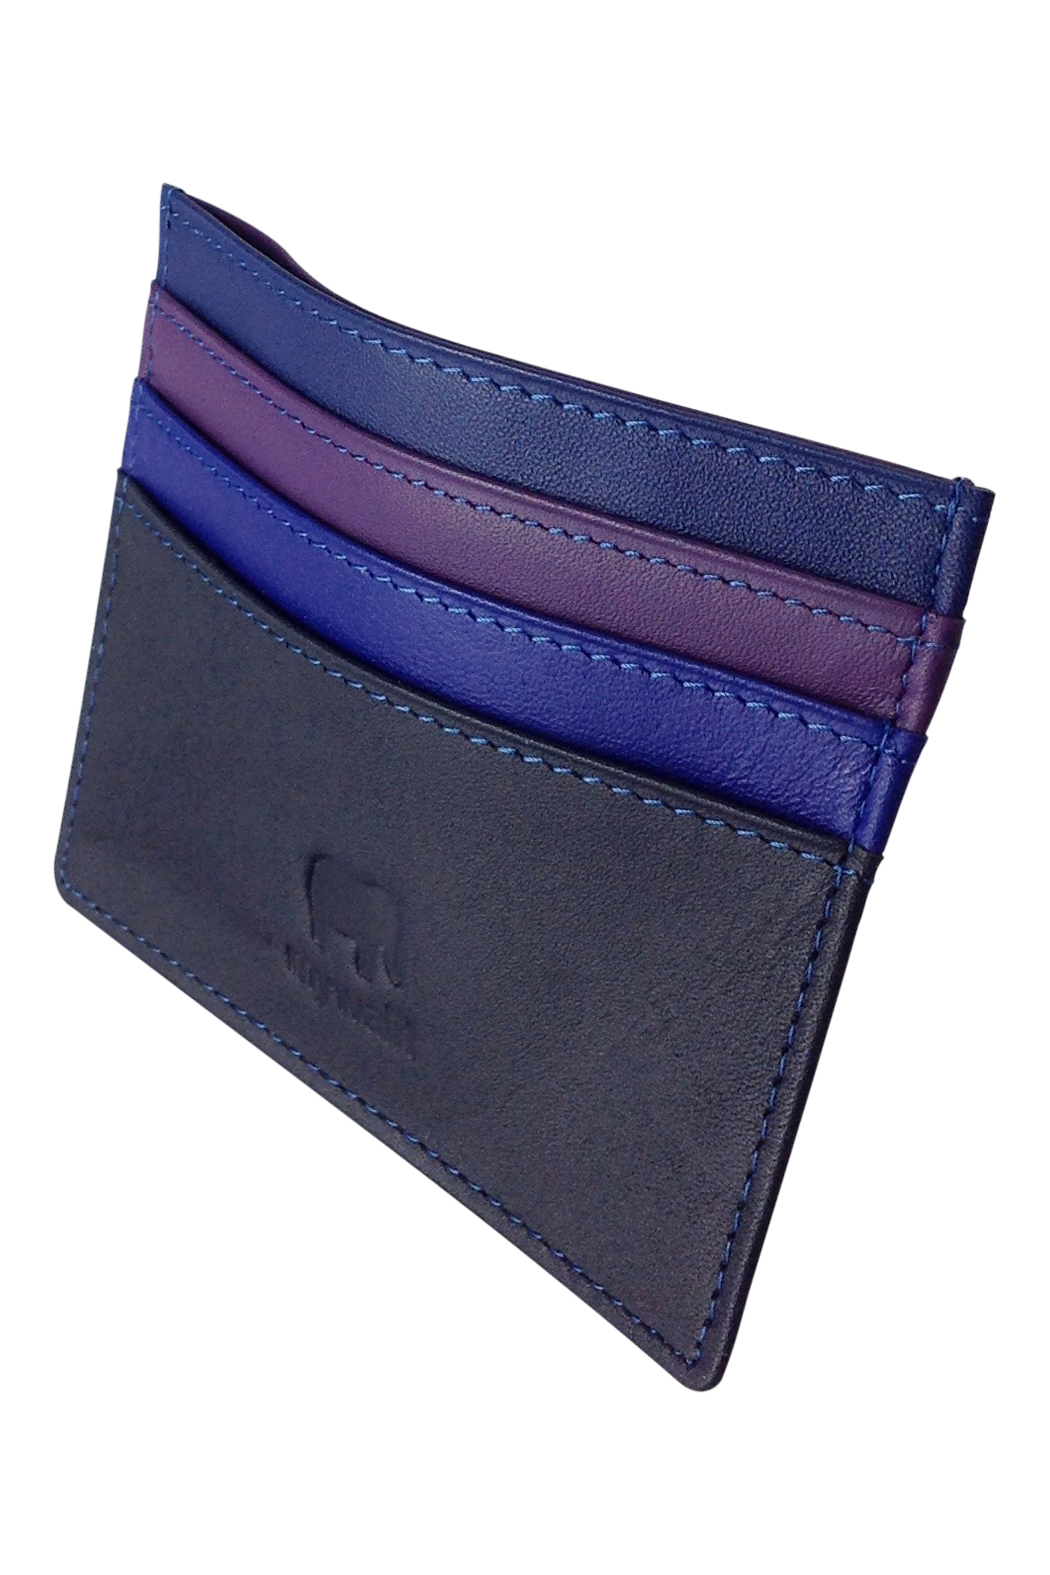 GH192. Blue mini wallet